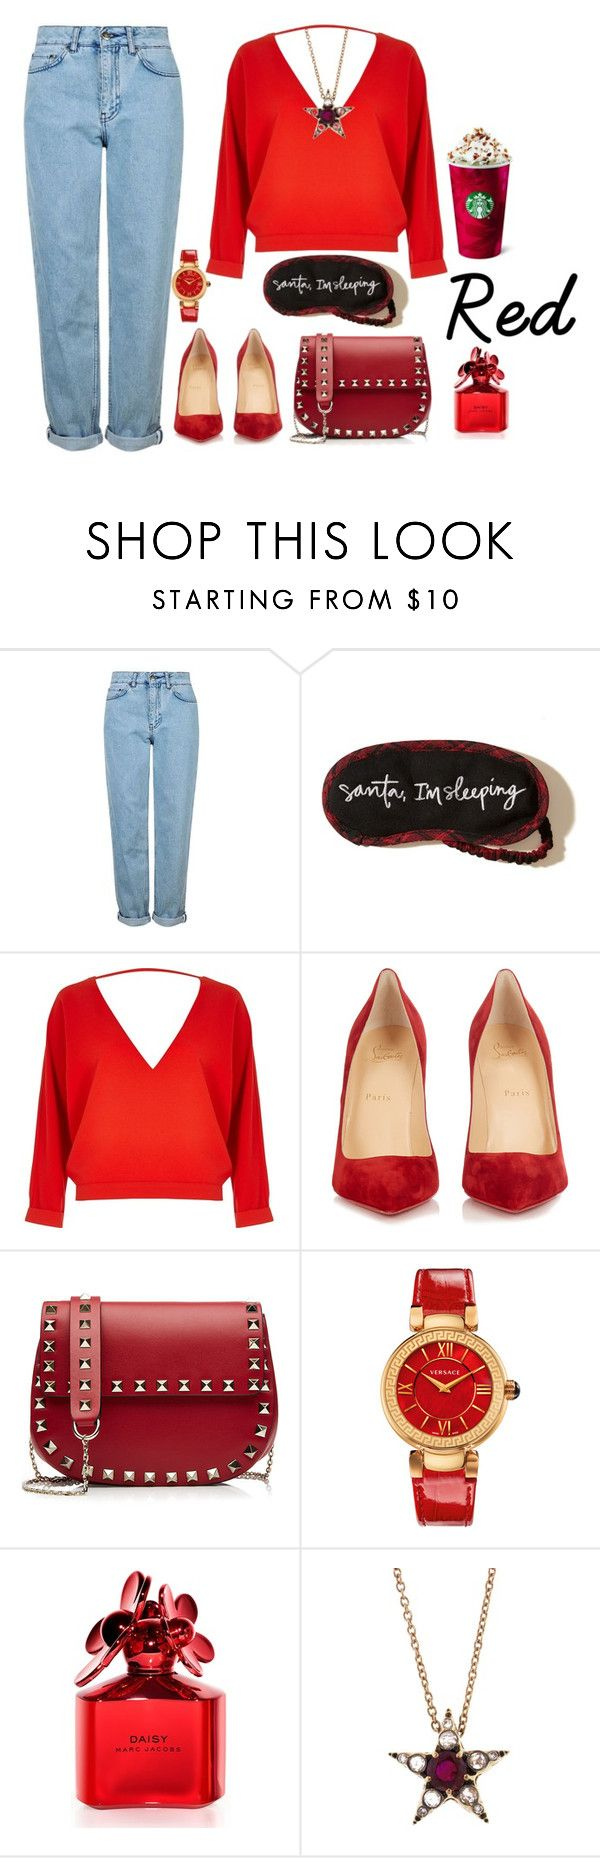 """#Red"" by aria-star ❤ liked on Polyvore featuring Topshop, Hollister Co., River Island, Christian Louboutin, Valentino, Versace, Marc Jacobs, Selim Mouzannar, StreetStyle and red"